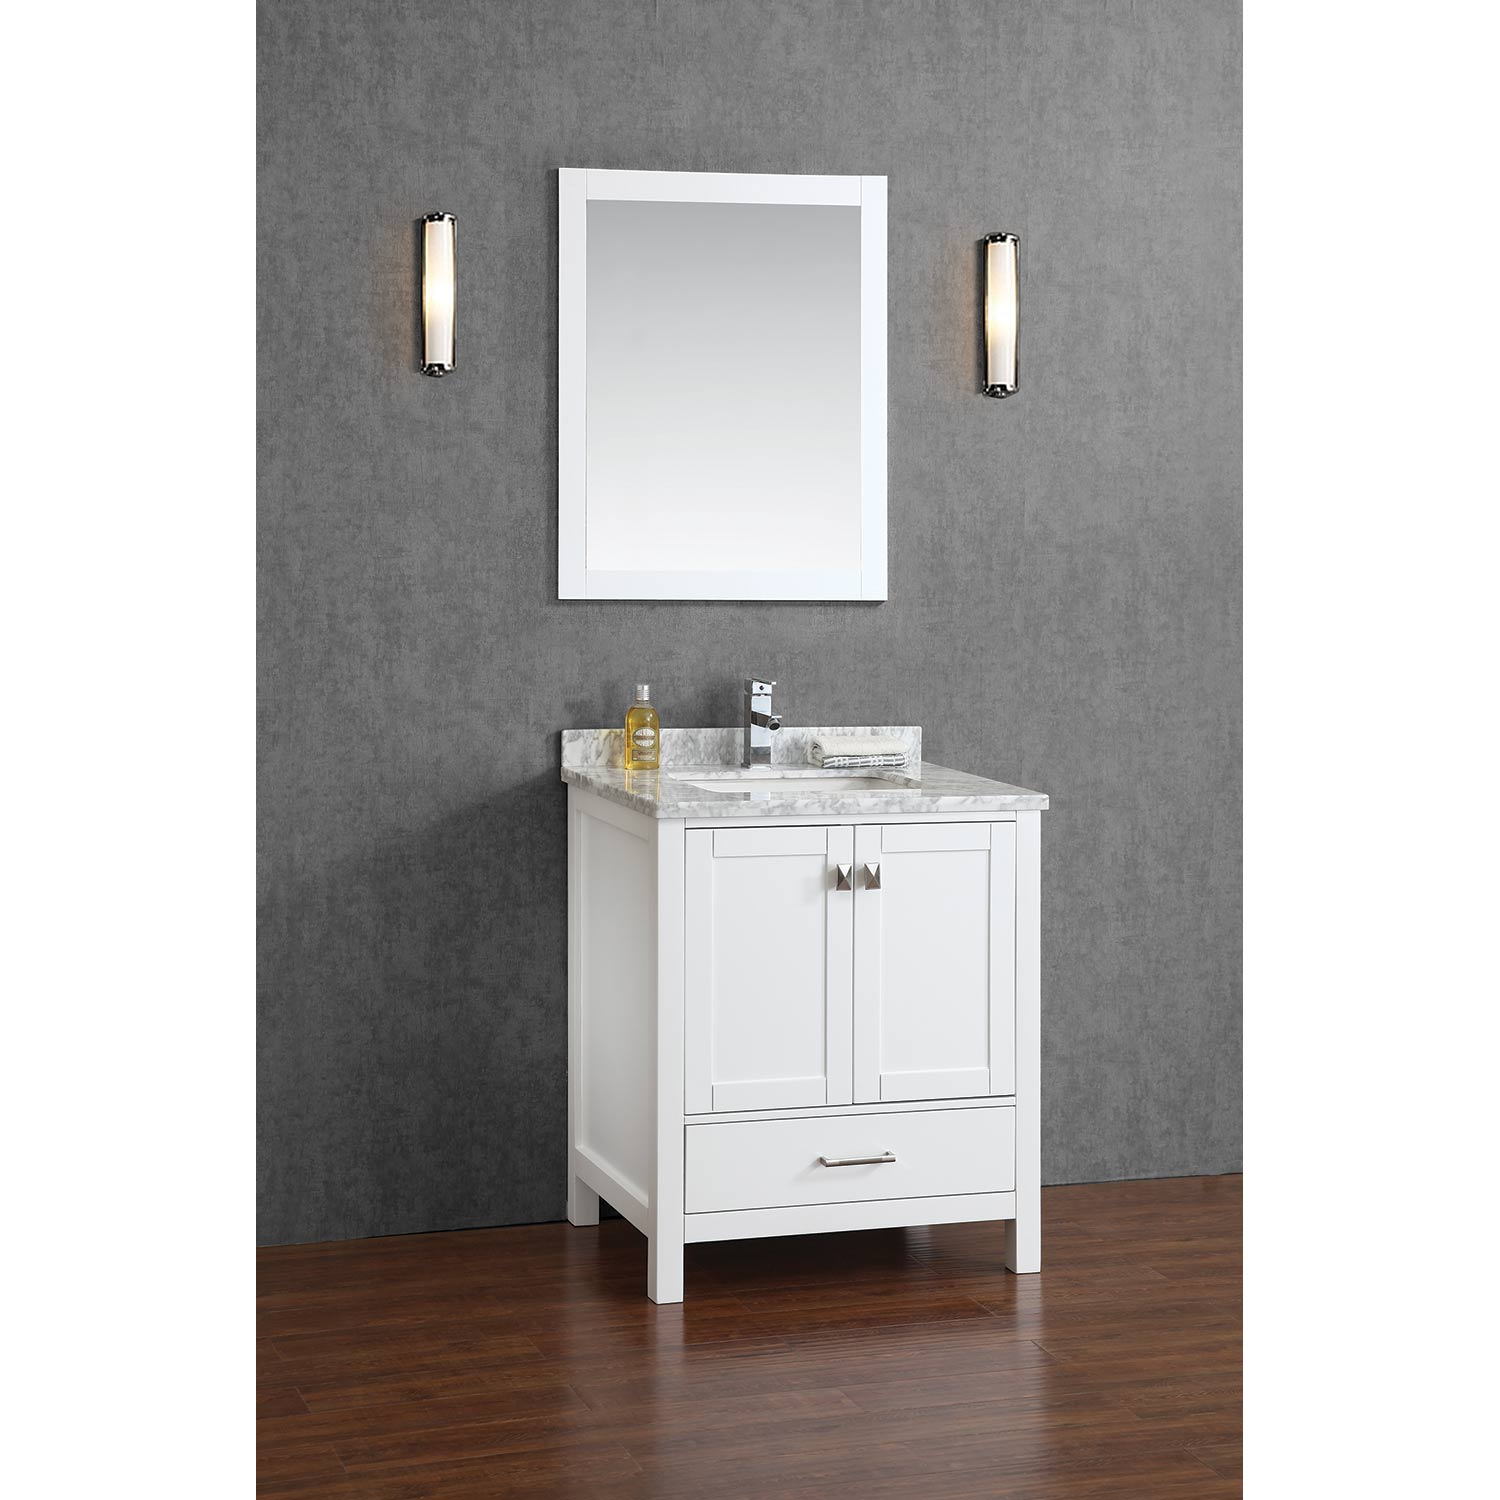 Buy vincent 30 inch solid wood double bathroom vanity in white hm 13001 30 wmsq wt Solid wood bathroom vanities cabinets